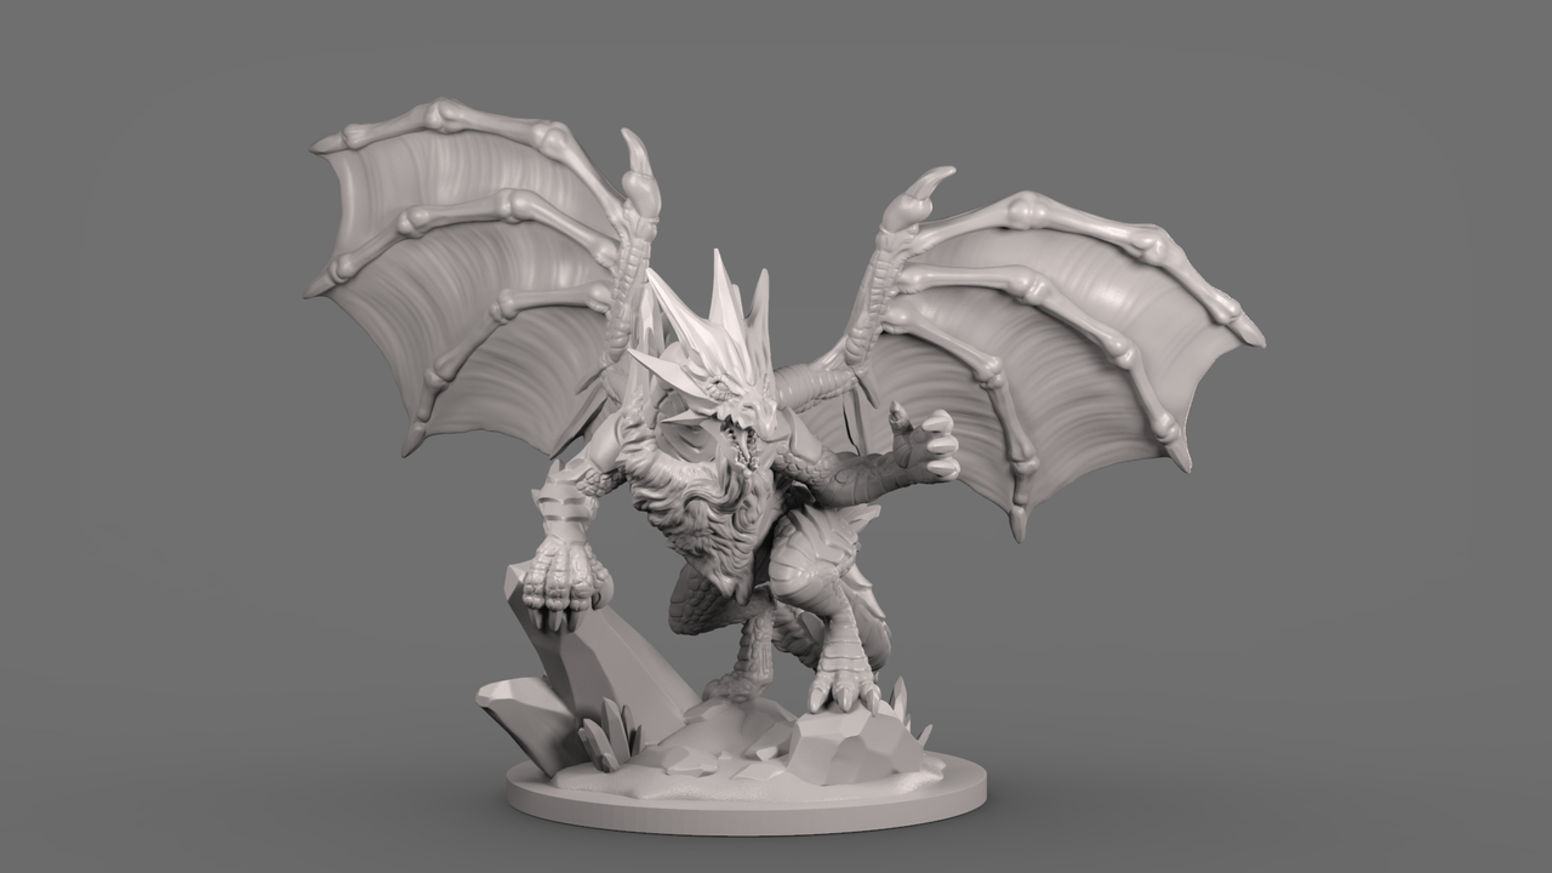 Creating a set of unique, highly-detailed 3D models of fantasy dragons for home 3D printing.